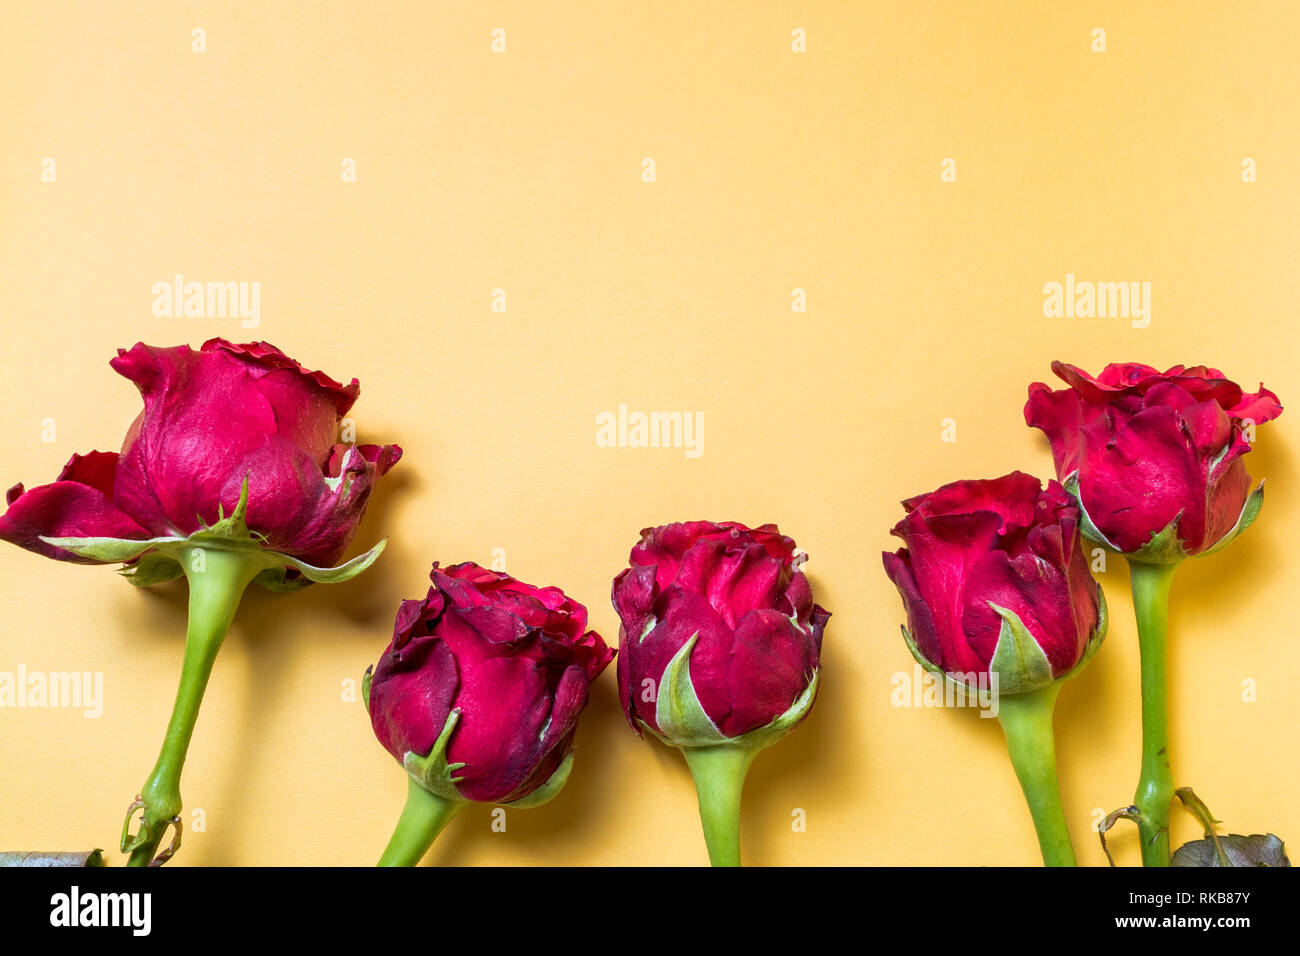 Rose flowers on yellow background, with copy space for text, horizontal orientation. - Stock Image